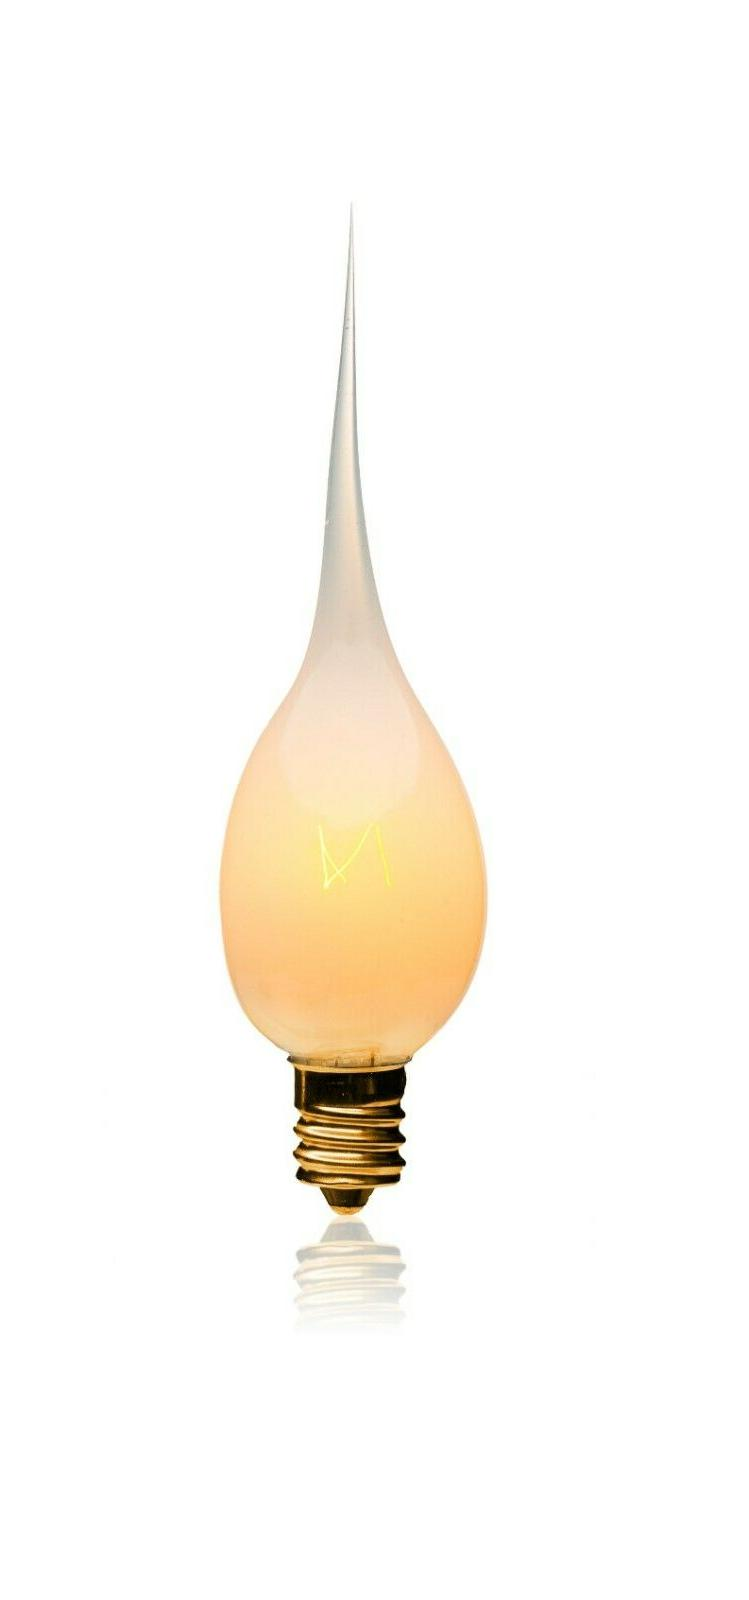 Silicone Bulbs for Candles, 6 or Pack Candle Bulbs, Bulbs,